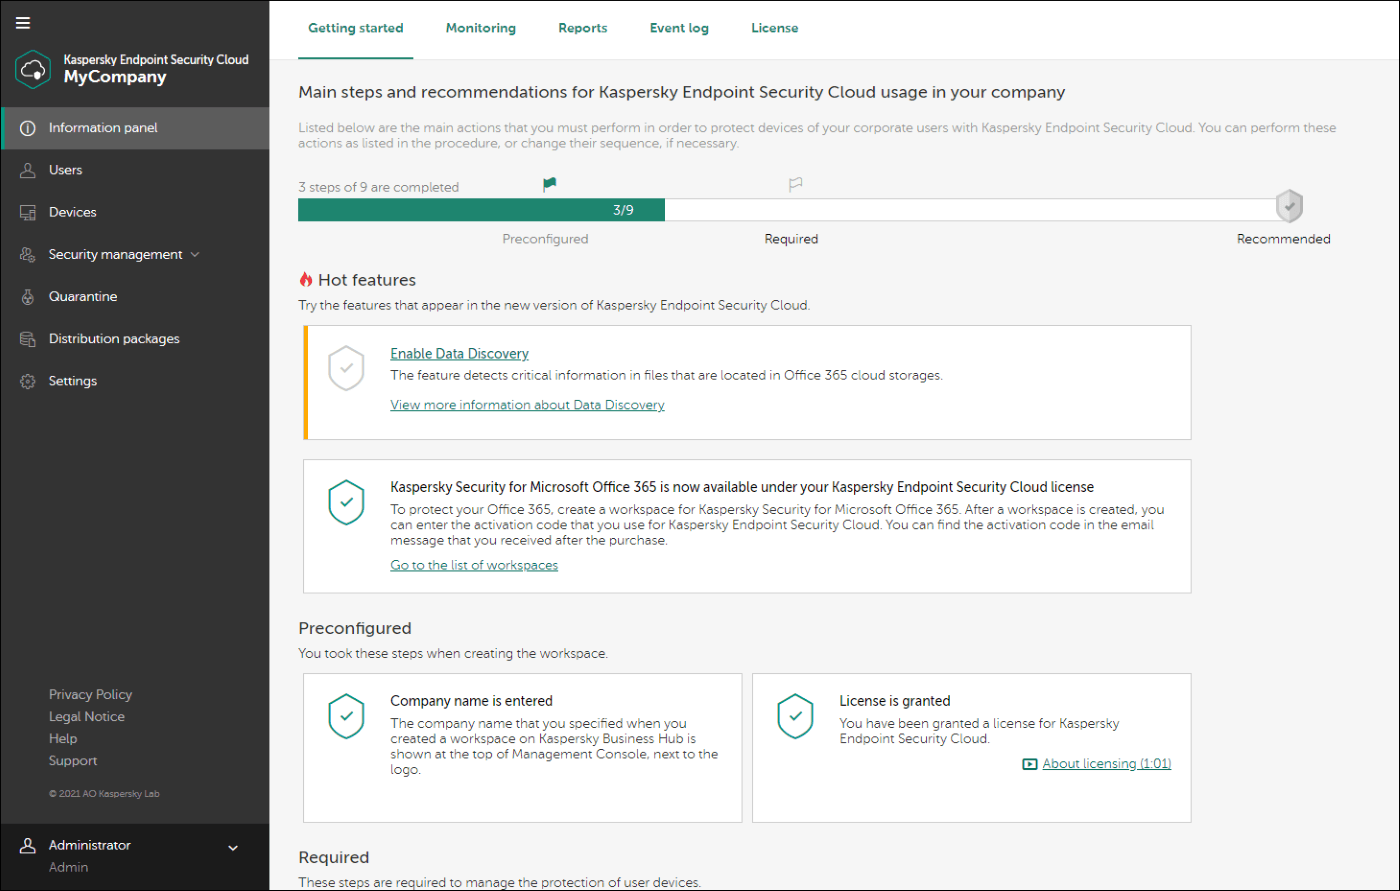 Kaspersky Endpoint Security interface.